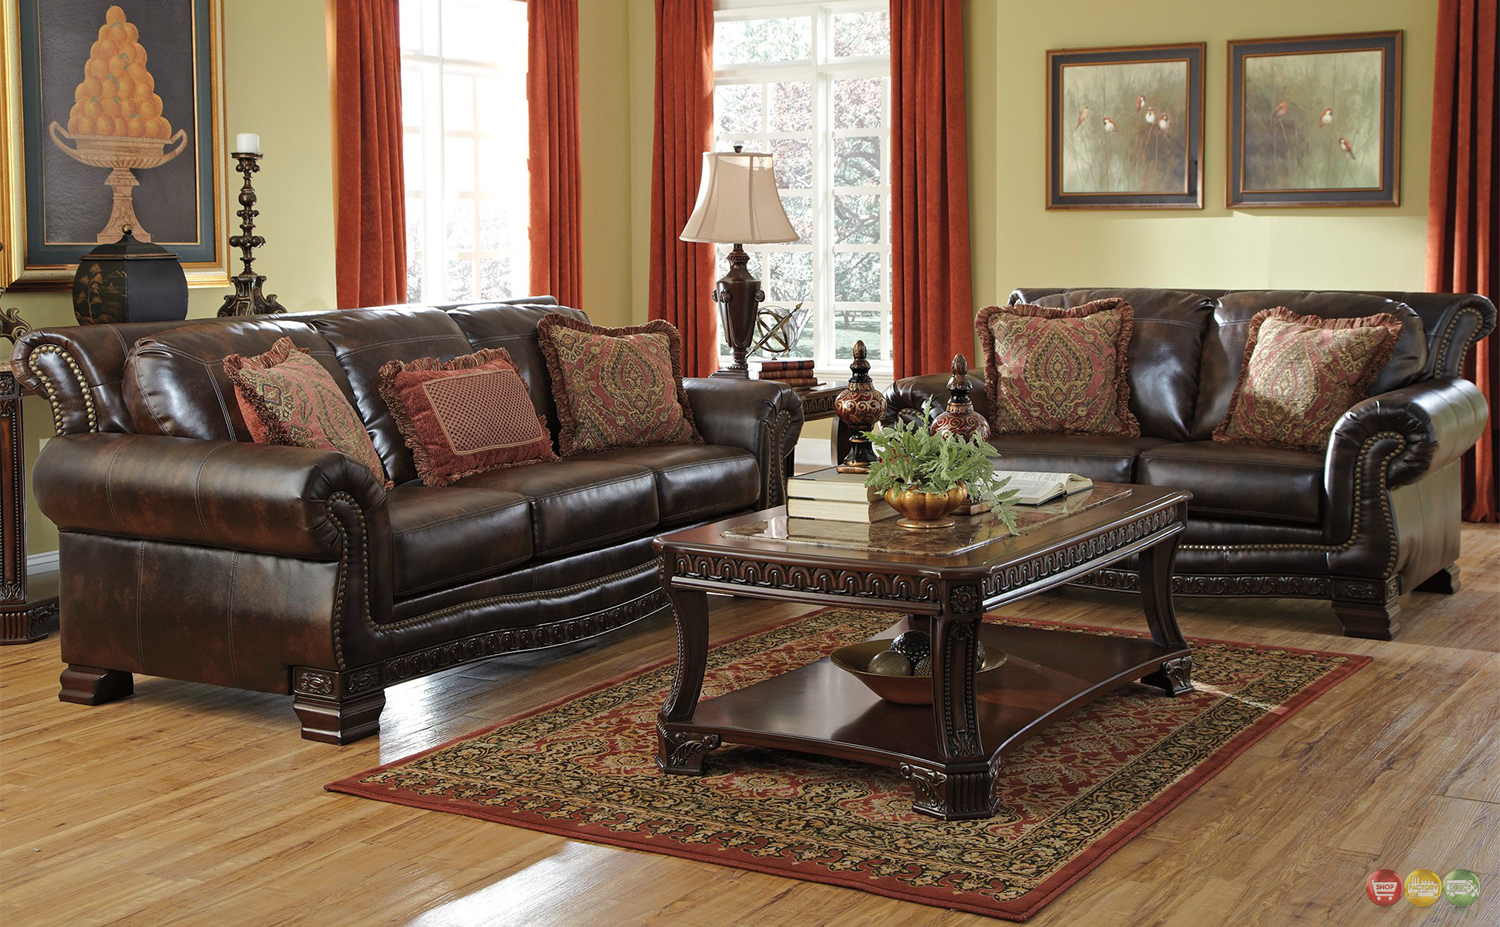 Traditional style living room furniture brown durablend w nailhead accents for Ashley leather living room furniture